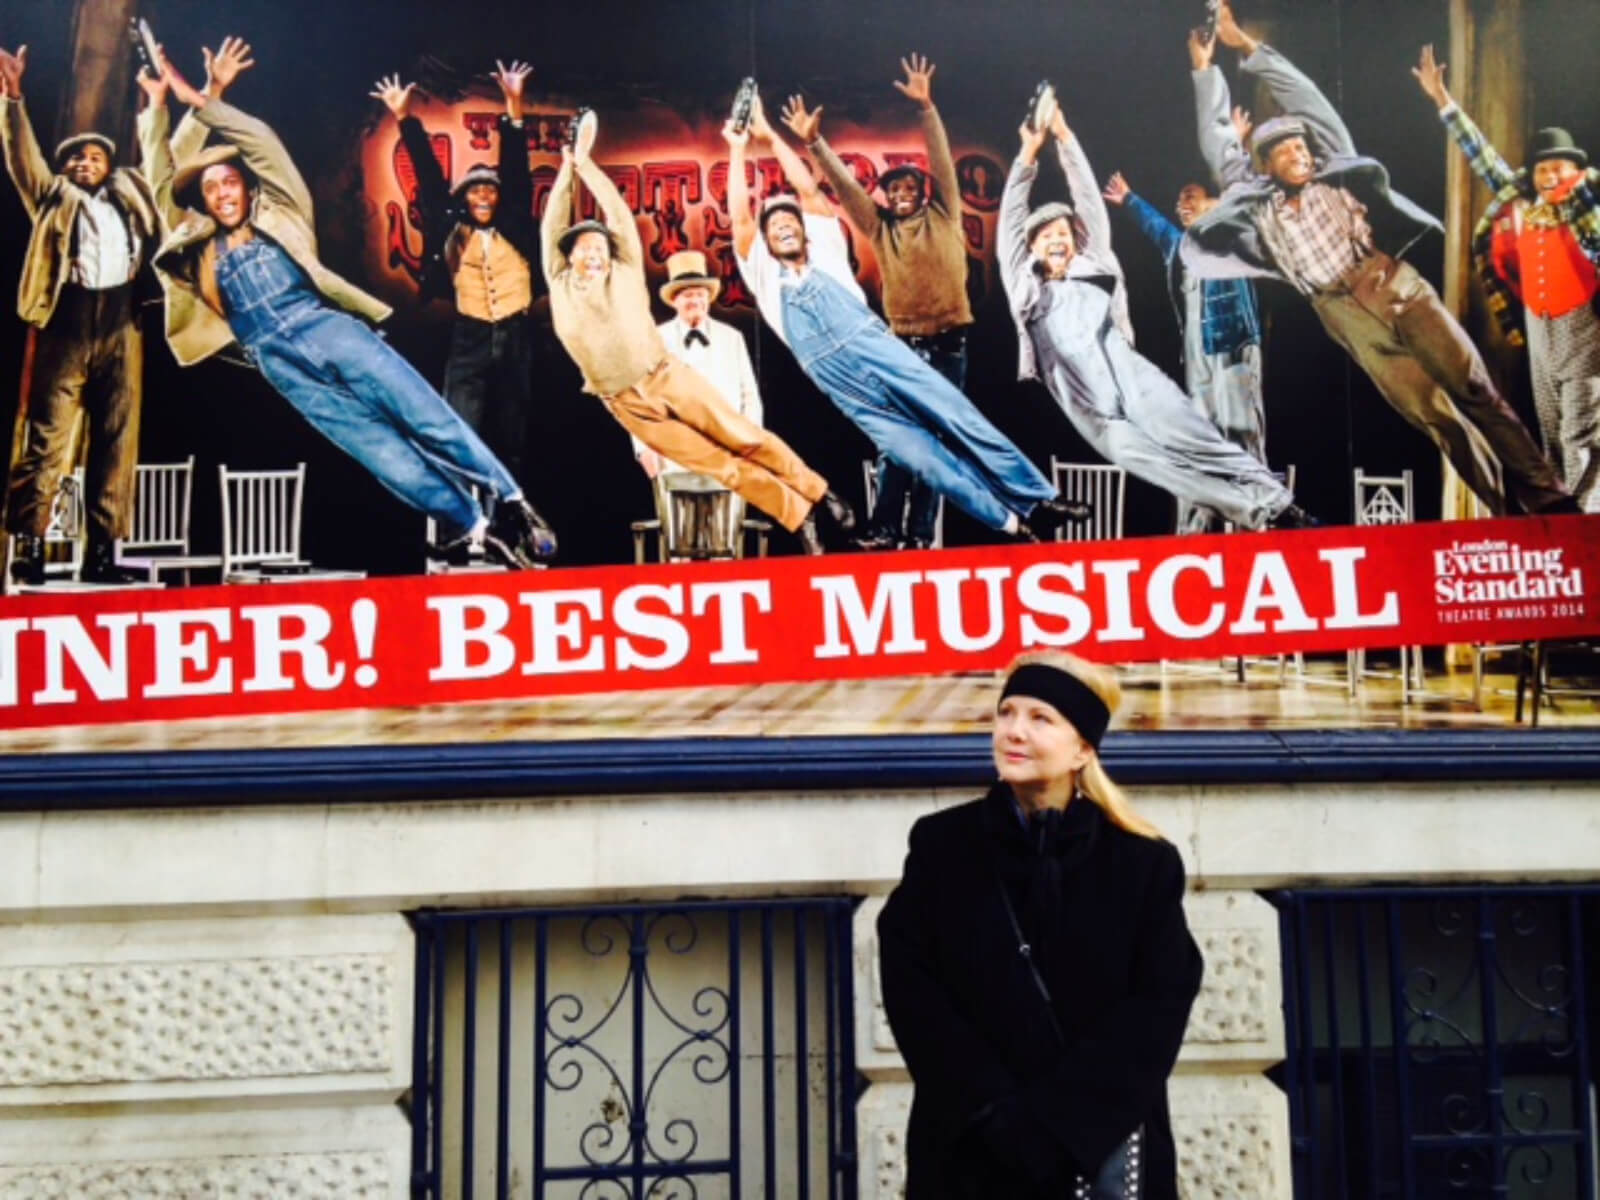 """Susan Stroman (in black jacket and headband) outside of The Scottsboro Boys marquee in London. Show photo and """"Best Music"""" can be seen."""